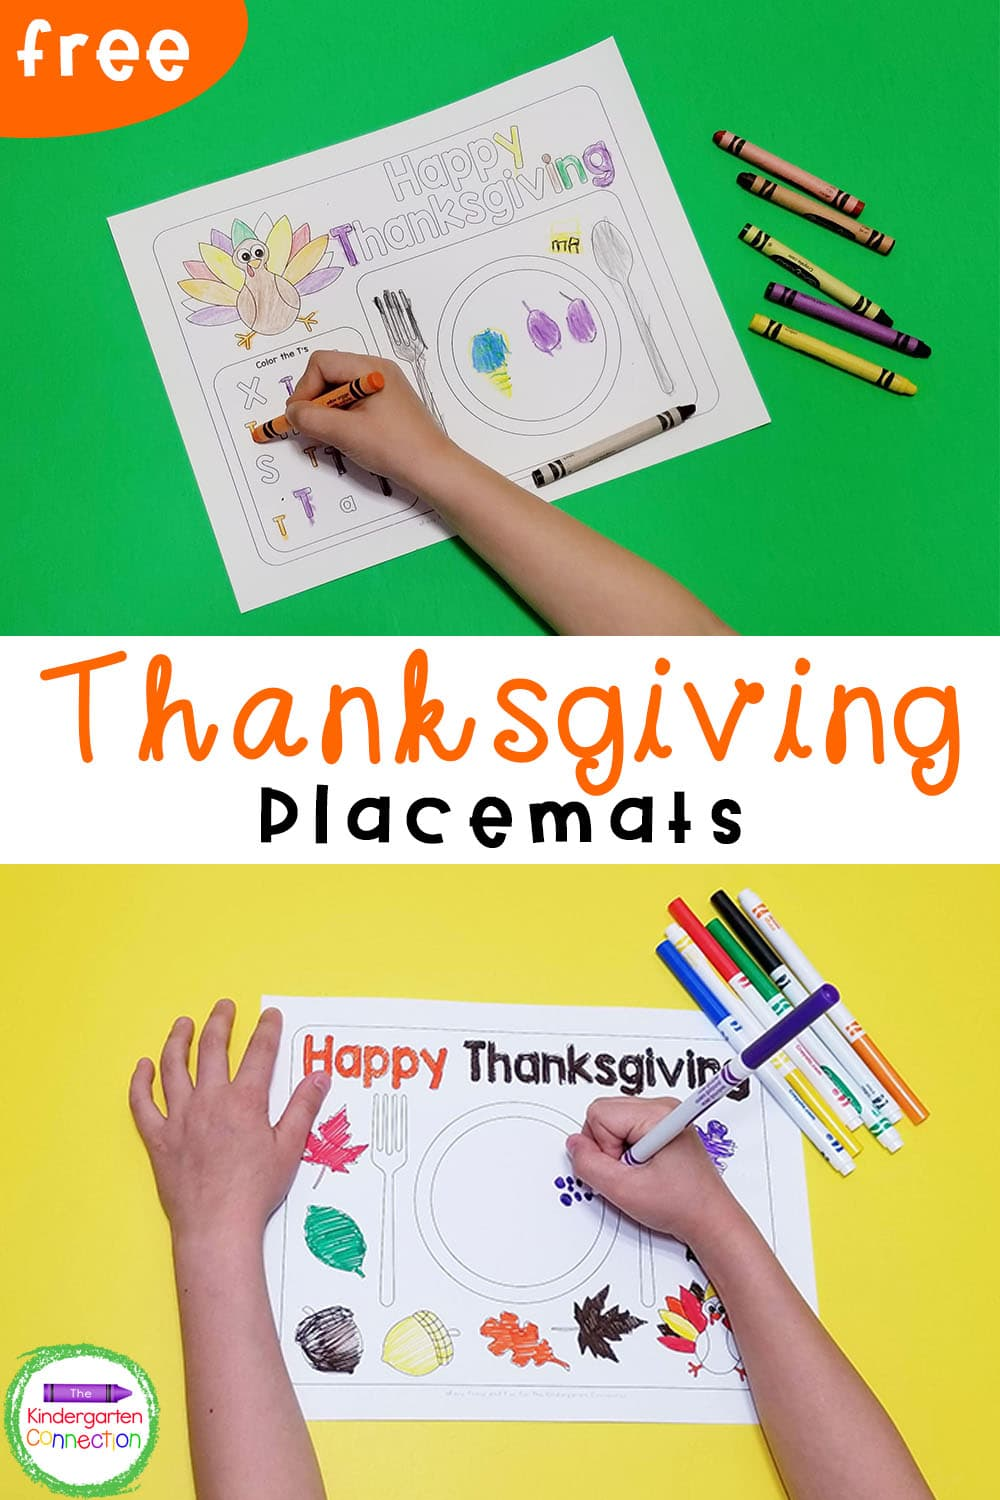 These FREE Printable Thanksgiving Placemats for kids will make your Thanksgiving meal at home or in the classroom extra special this year!